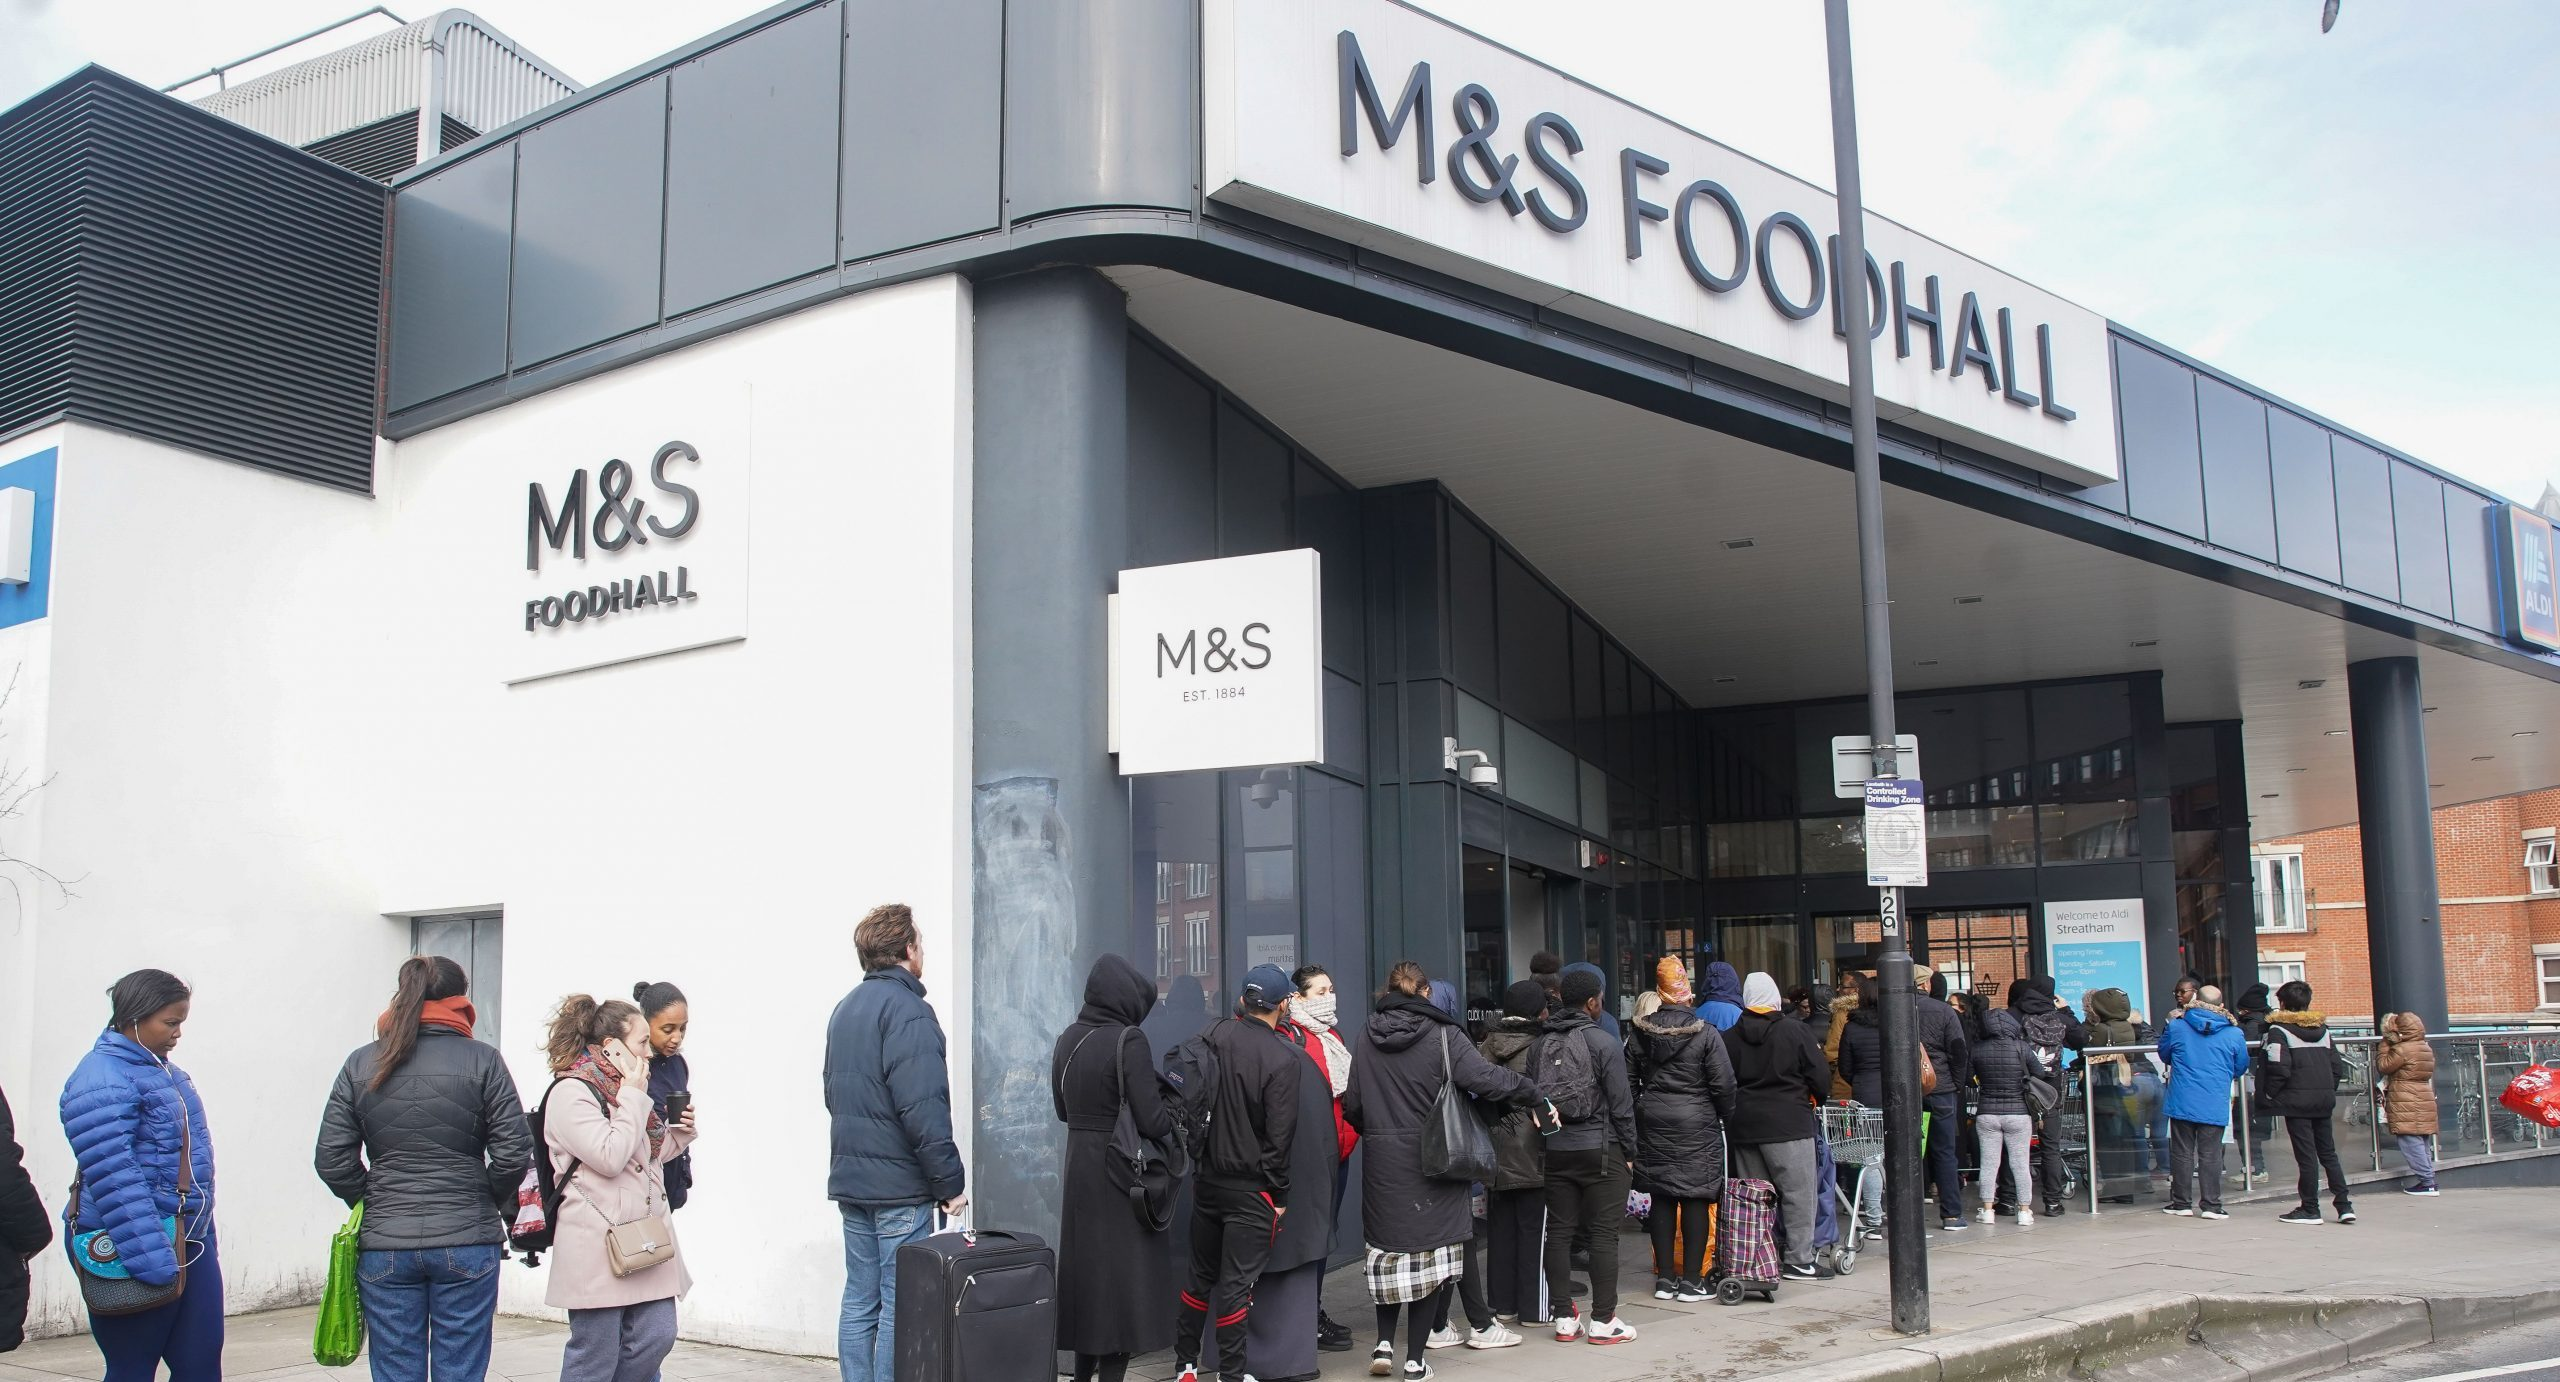 Coronavirus: M&S closes its clothing and homeware-only stores amid lockdown